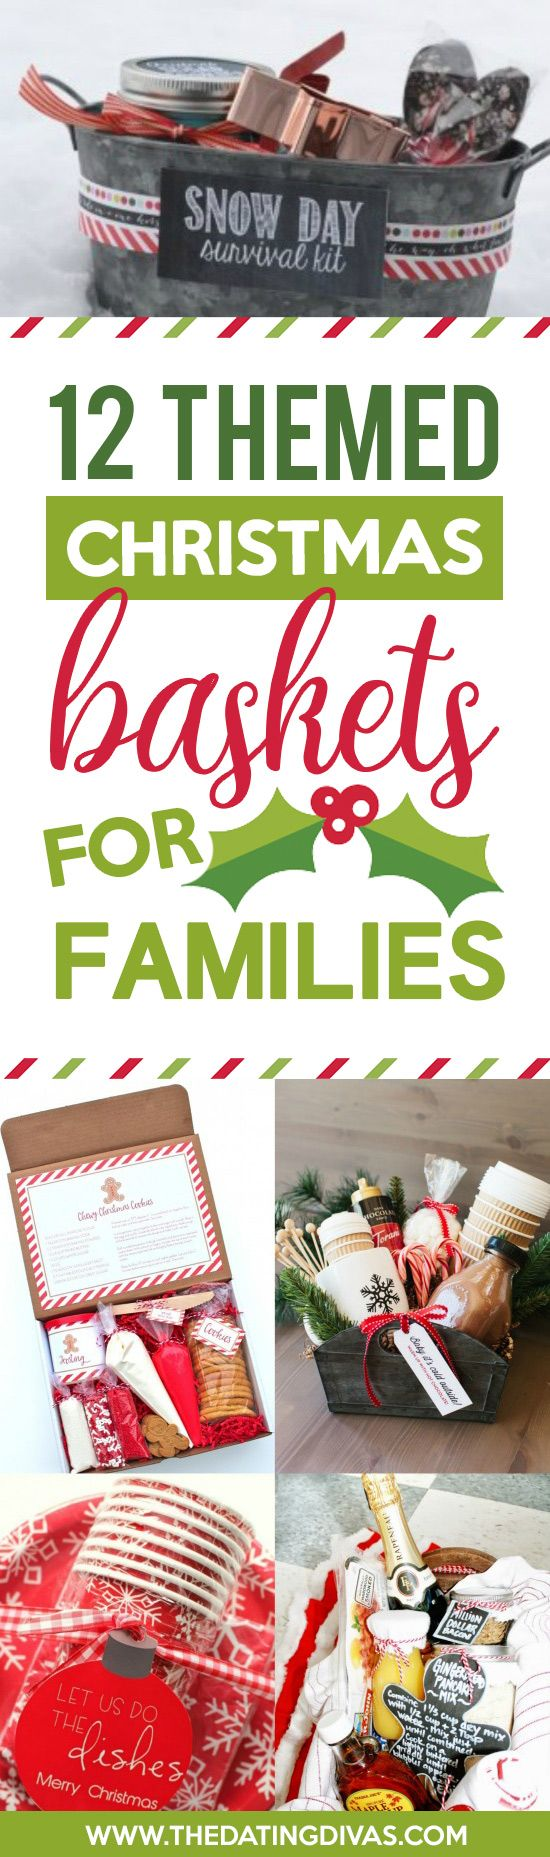 Christmas Gift Basket Ideas for Everyone | christmas gift ideas ...